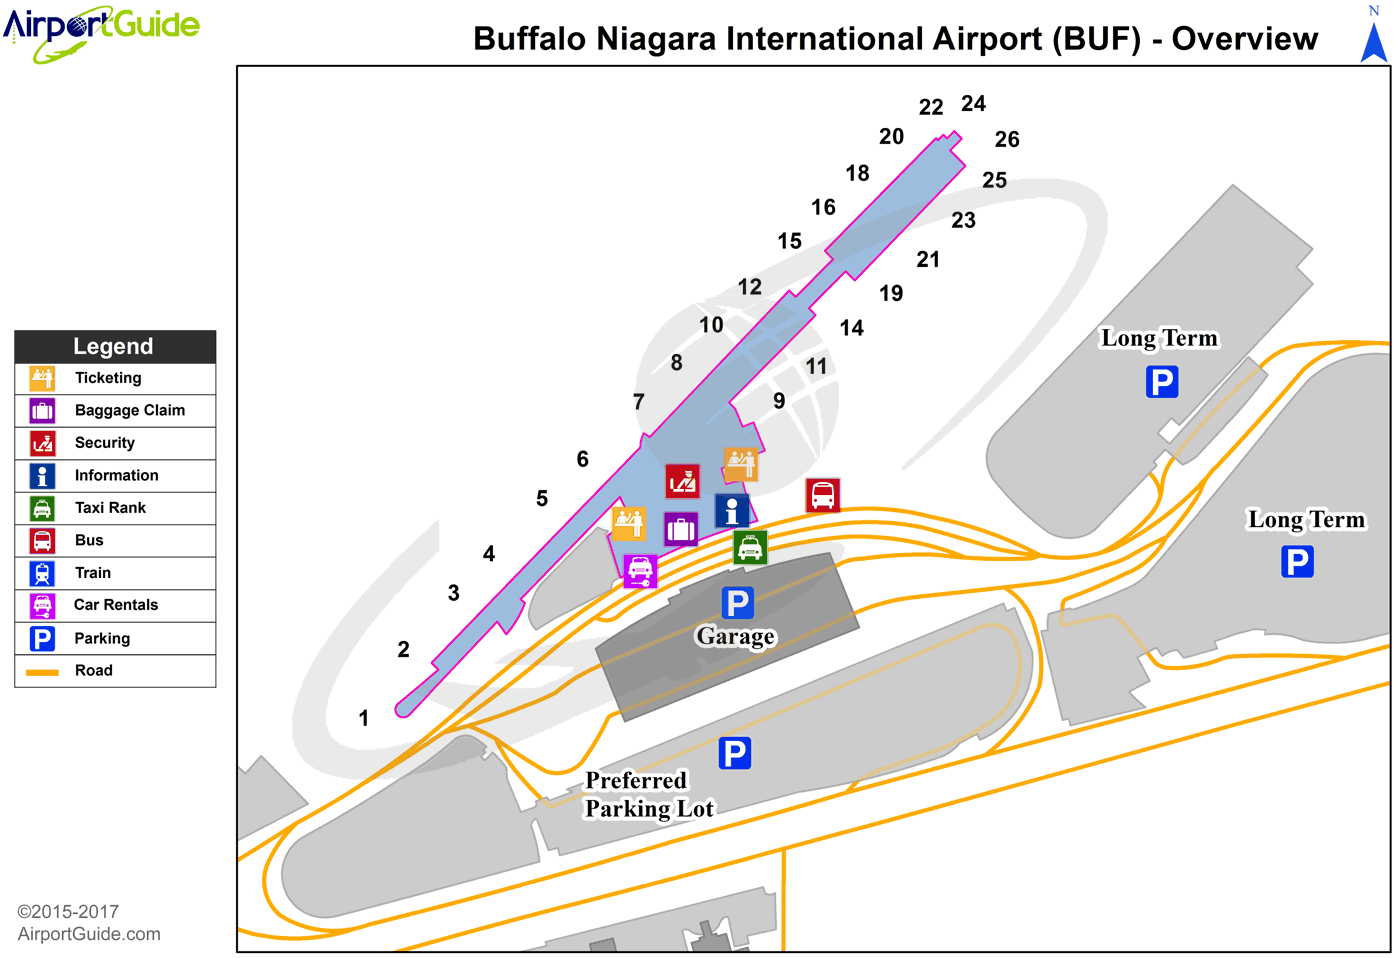 Buffalo - Buffalo Niagara International (BUF) Airport Terminal Map - Overview